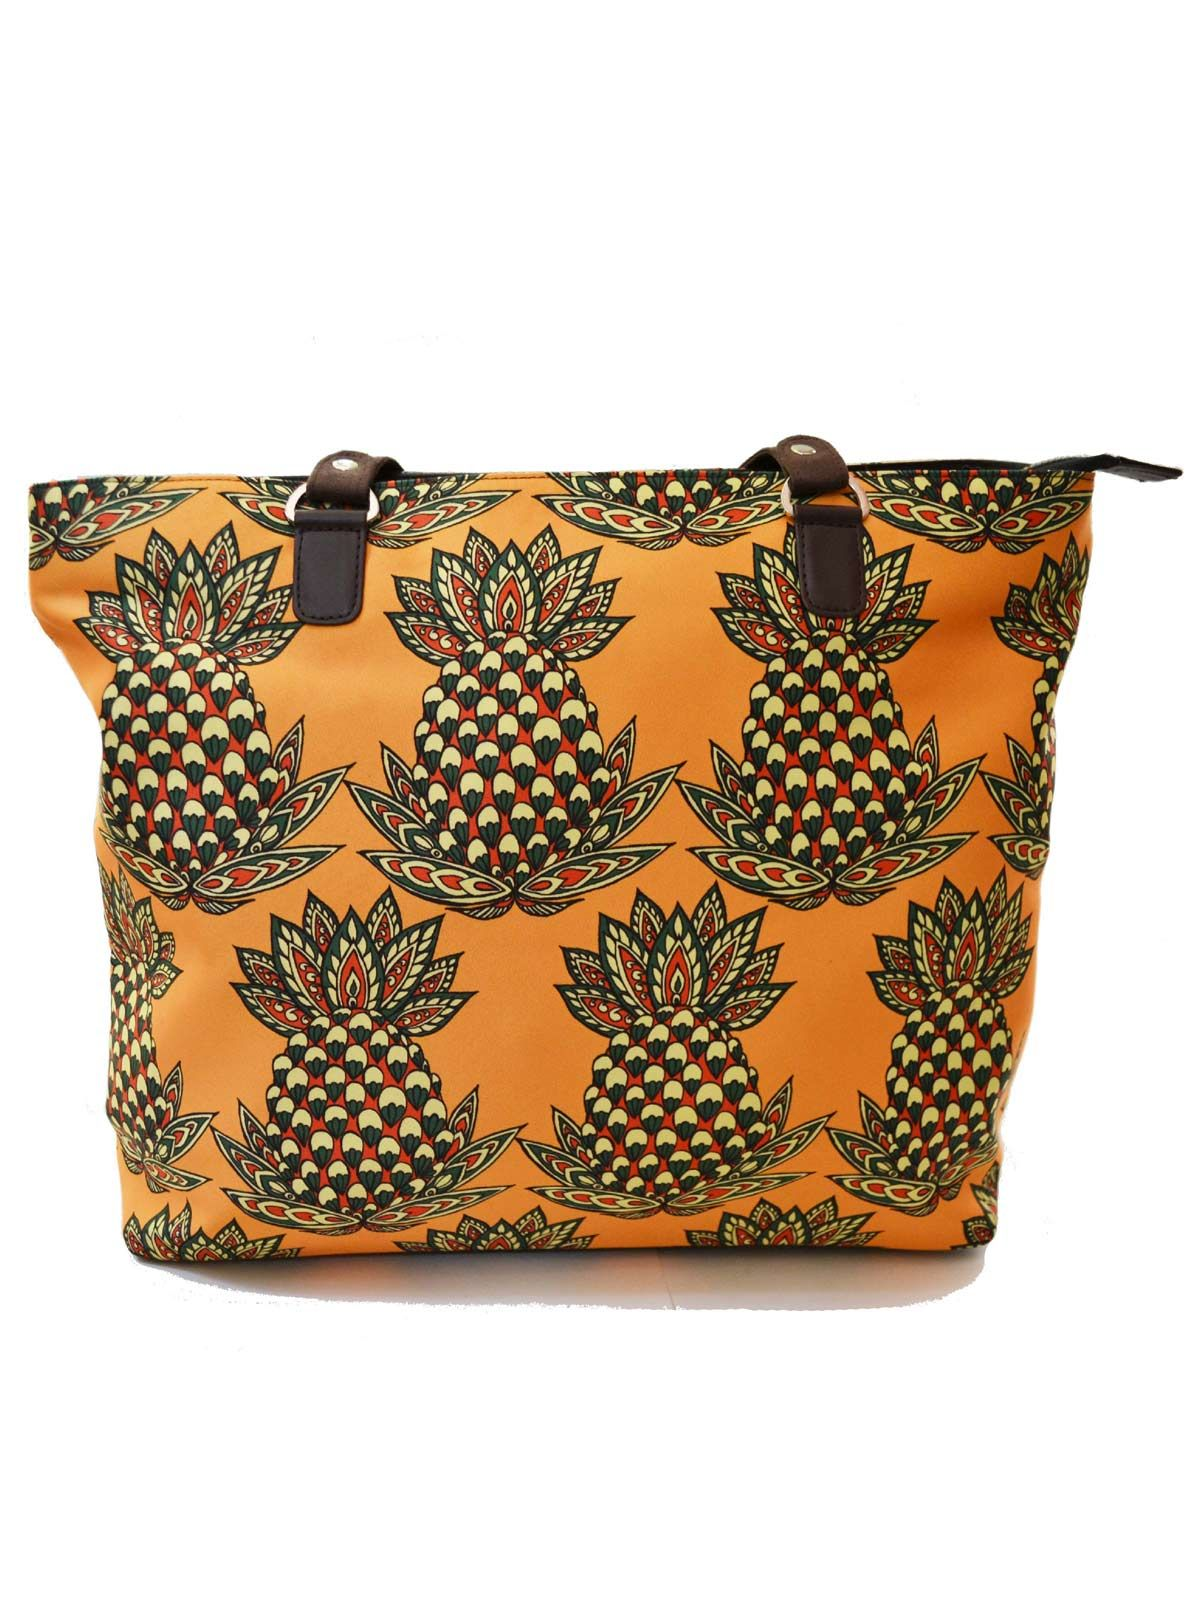 Pineapple Printed Handbag